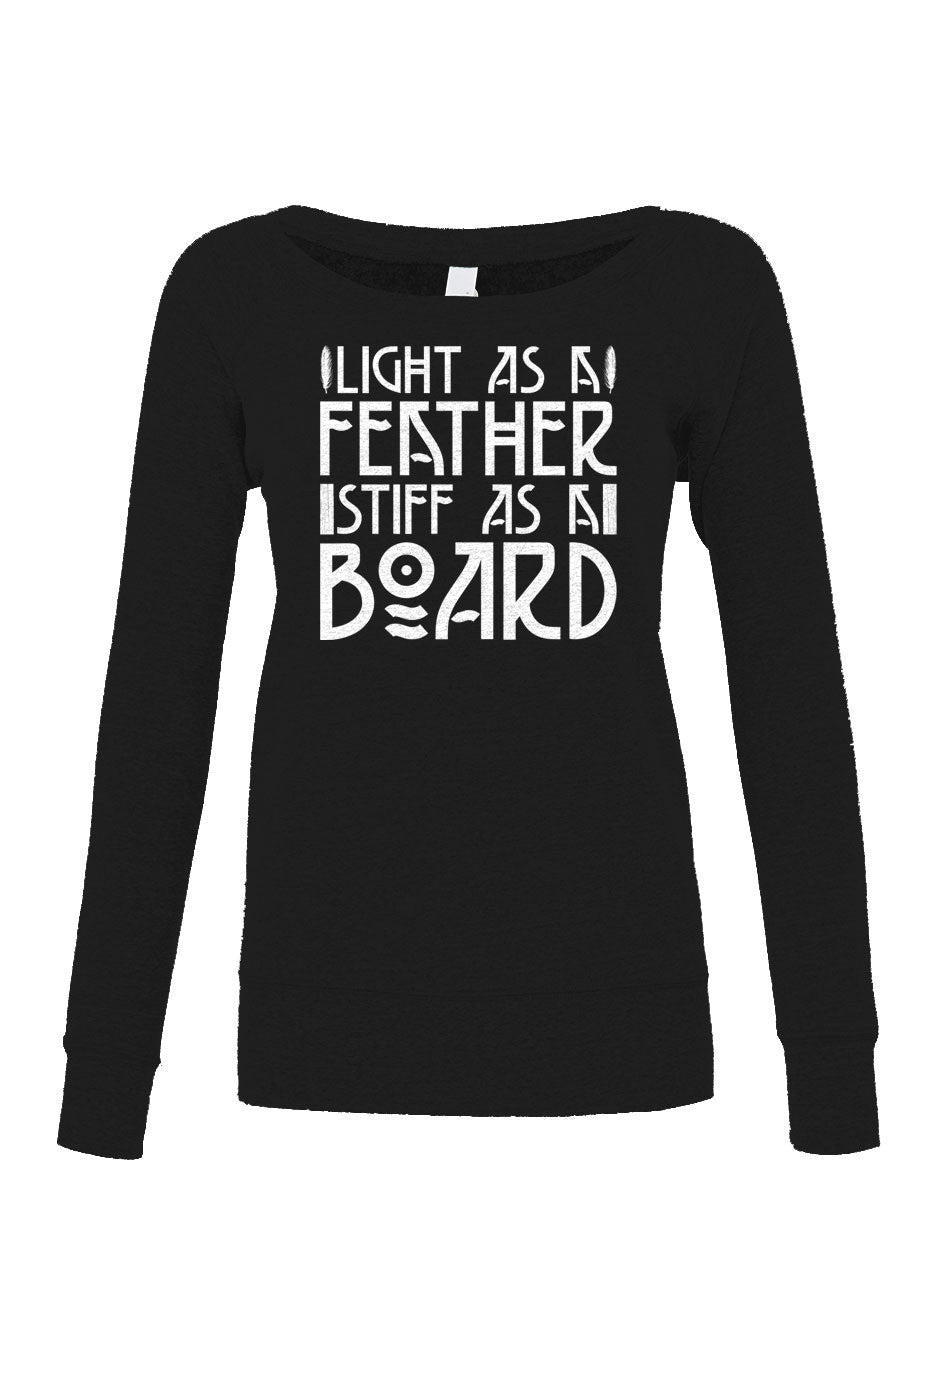 Women's Light as a Feather Stiff as a Board Scoop Neck Fleece - Juniors Fit